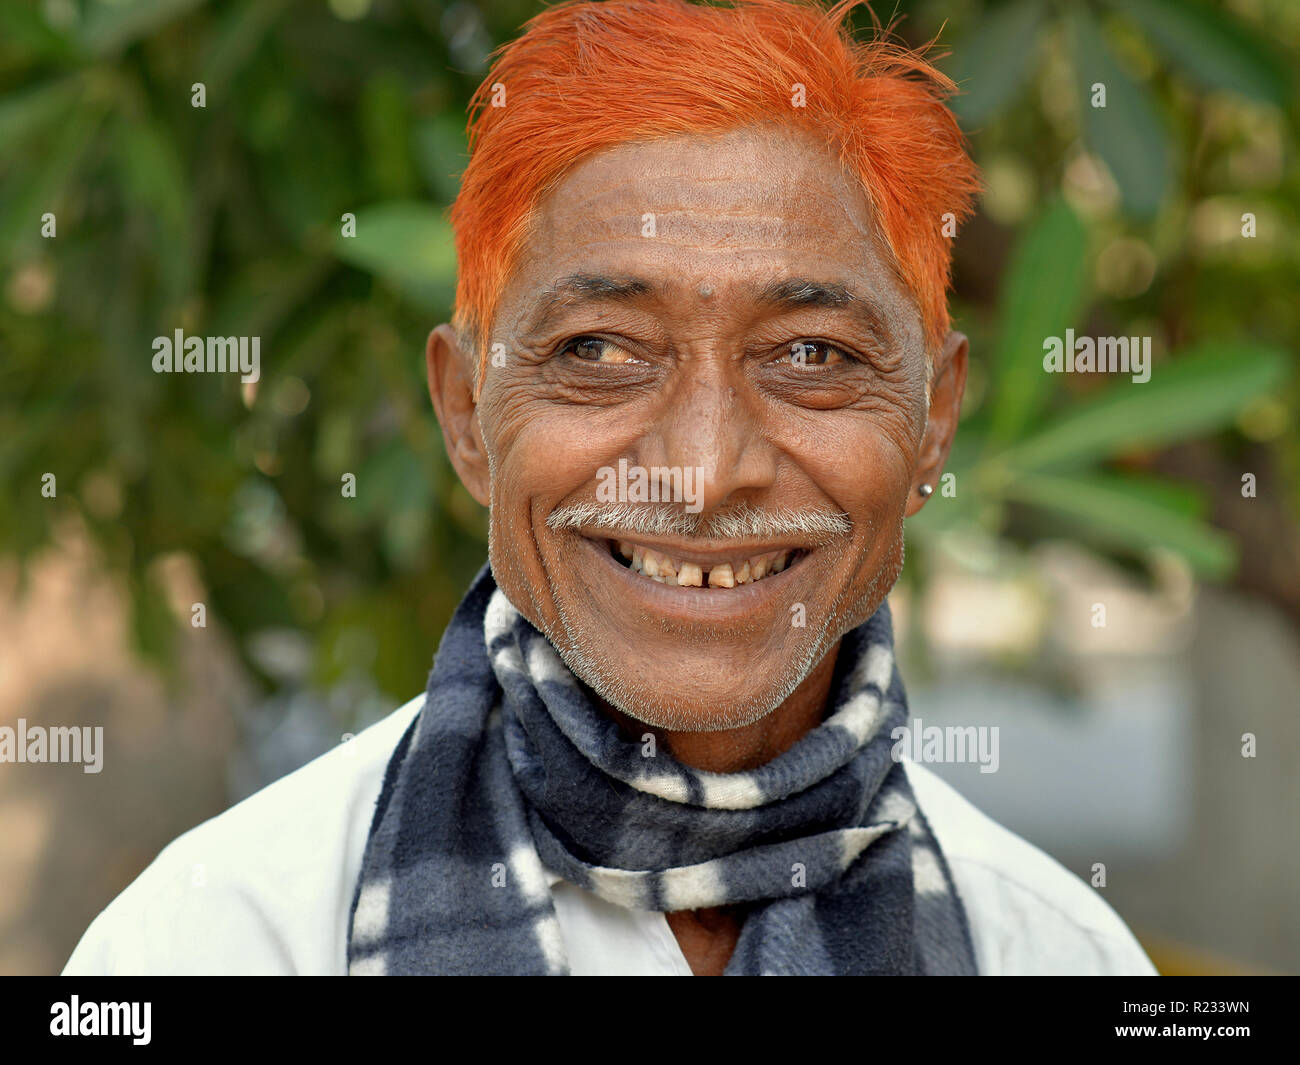 Squinting, middle-aged Indian man (right eye deviated outward) with a pencil moustache and henna-dyed orange hair smiles for the camera. - Stock Image